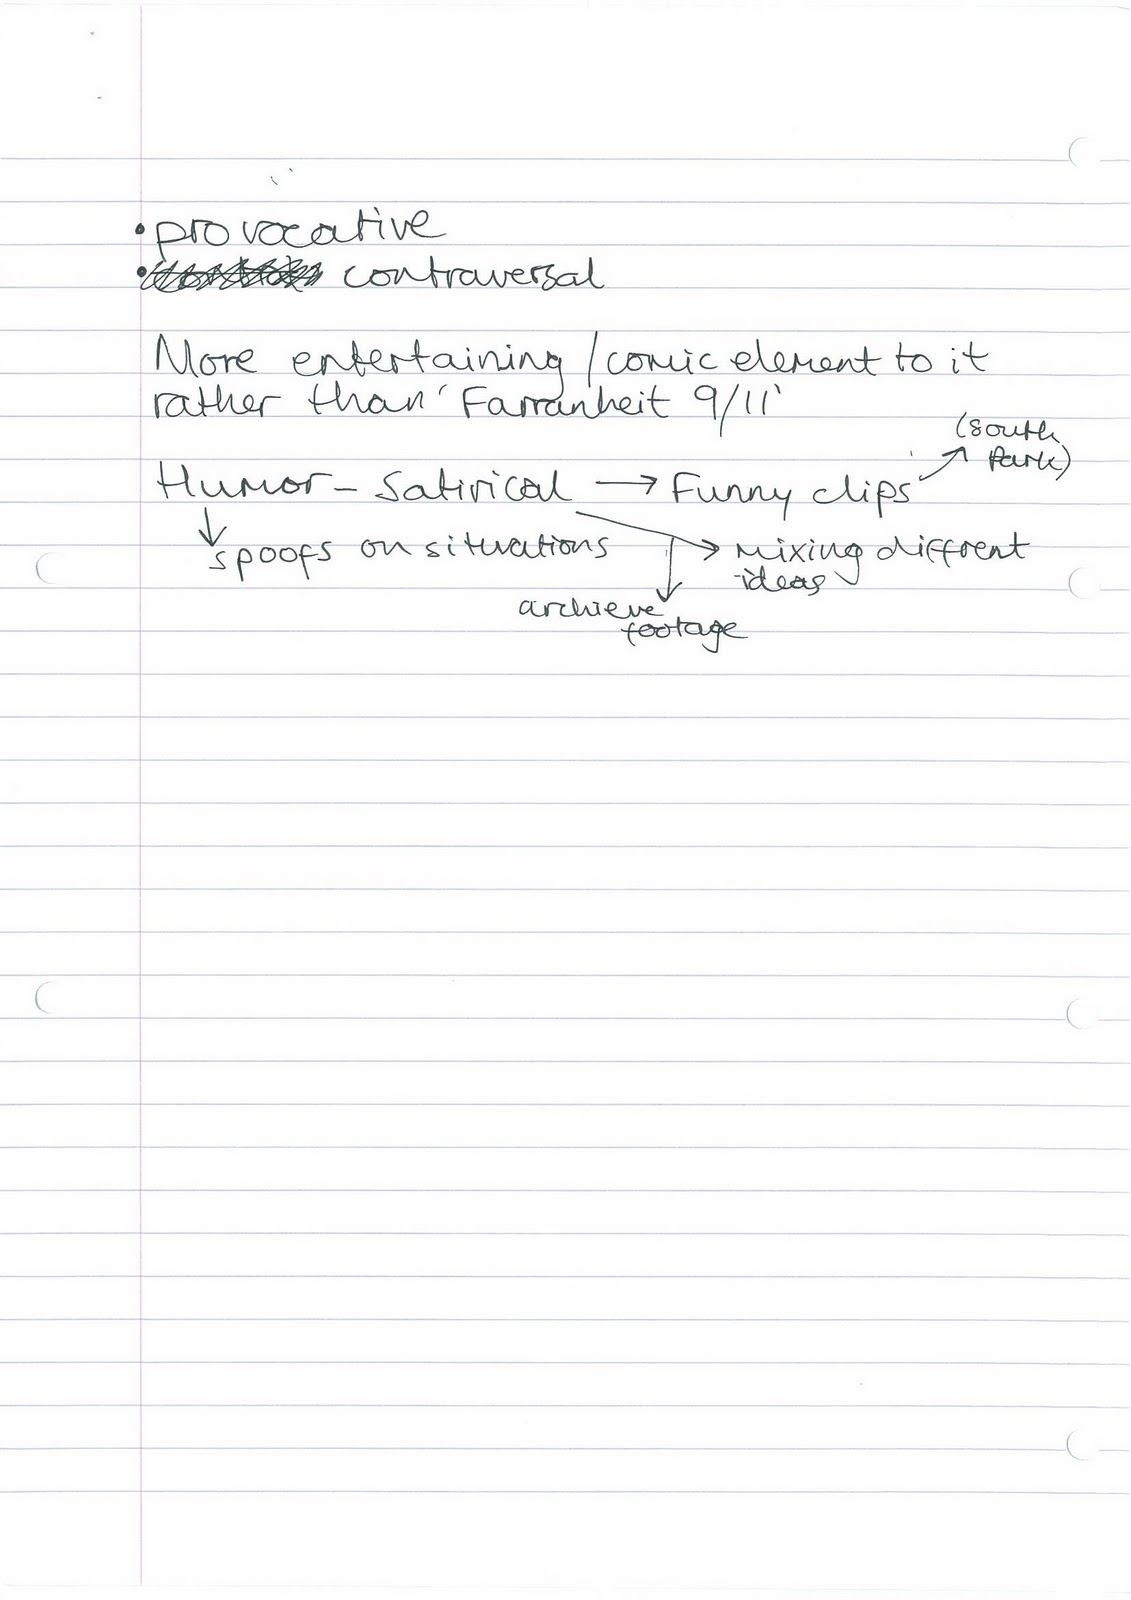 an introduction of different social issues through michael moores documentary bowling for columbine Extracts from this document introduction how is michael moore's objective in 'bowling for columbine' realised though his documentary making style.